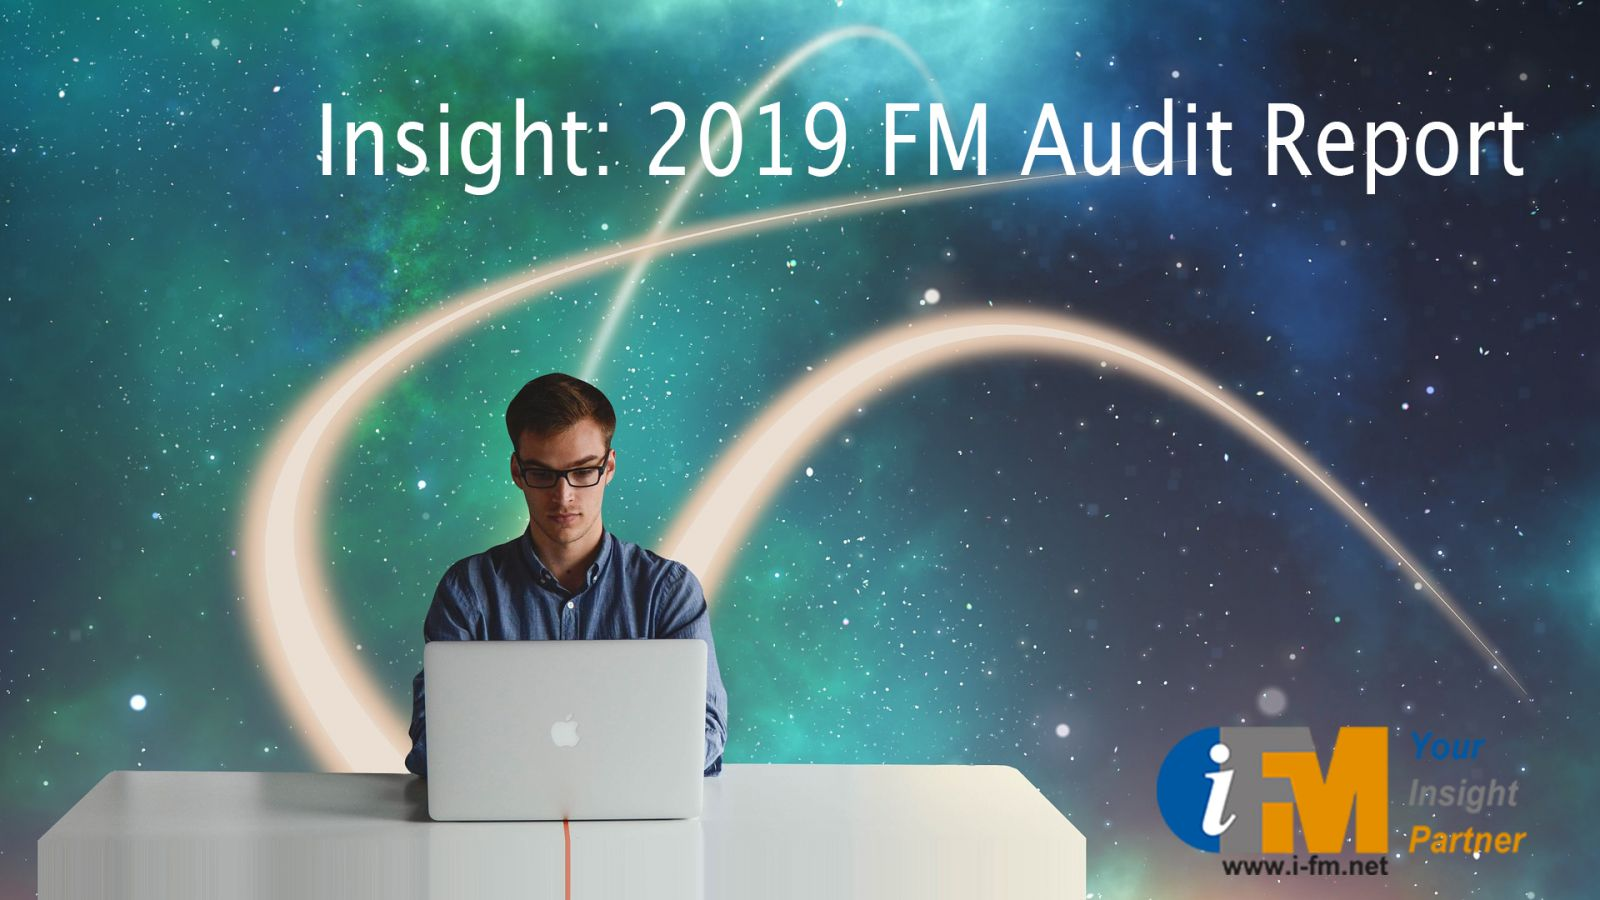 Insight: FM Audit Report 2019